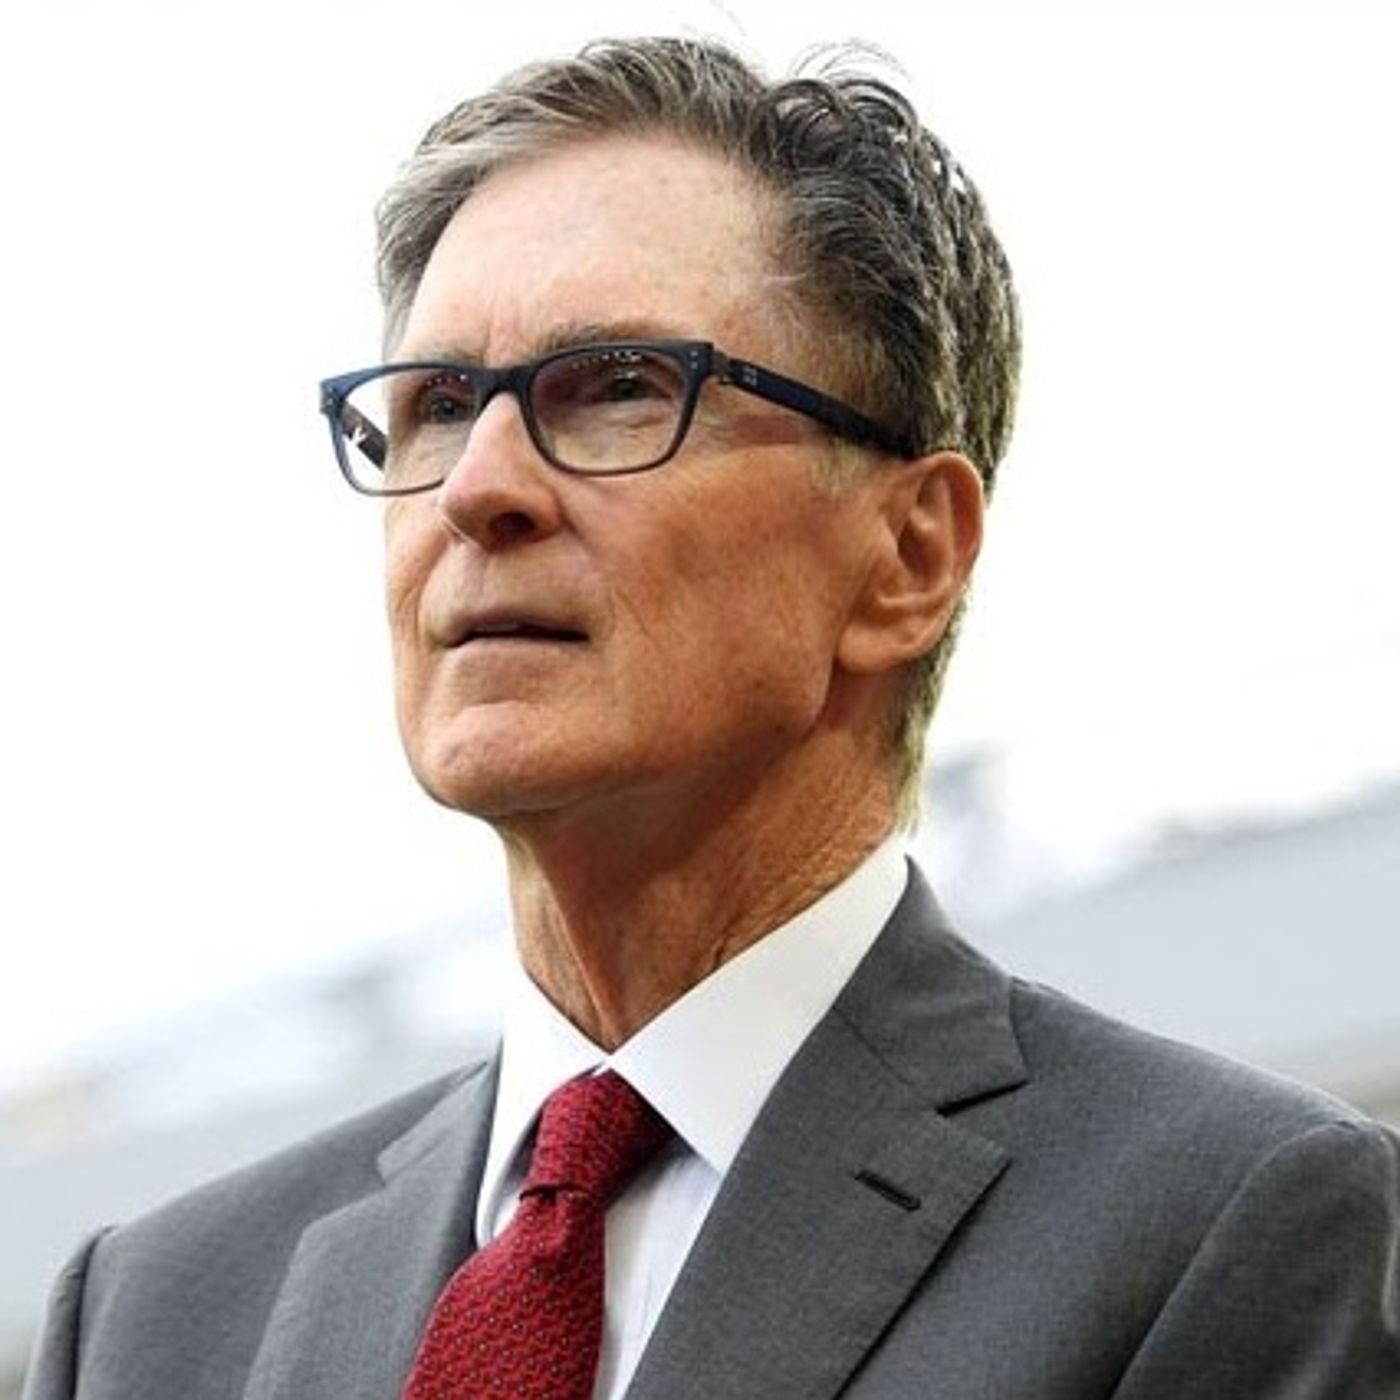 Kieran Maguire on FSG's plans for Liverpool: Project Big Picture | Stock market | Next 10 years